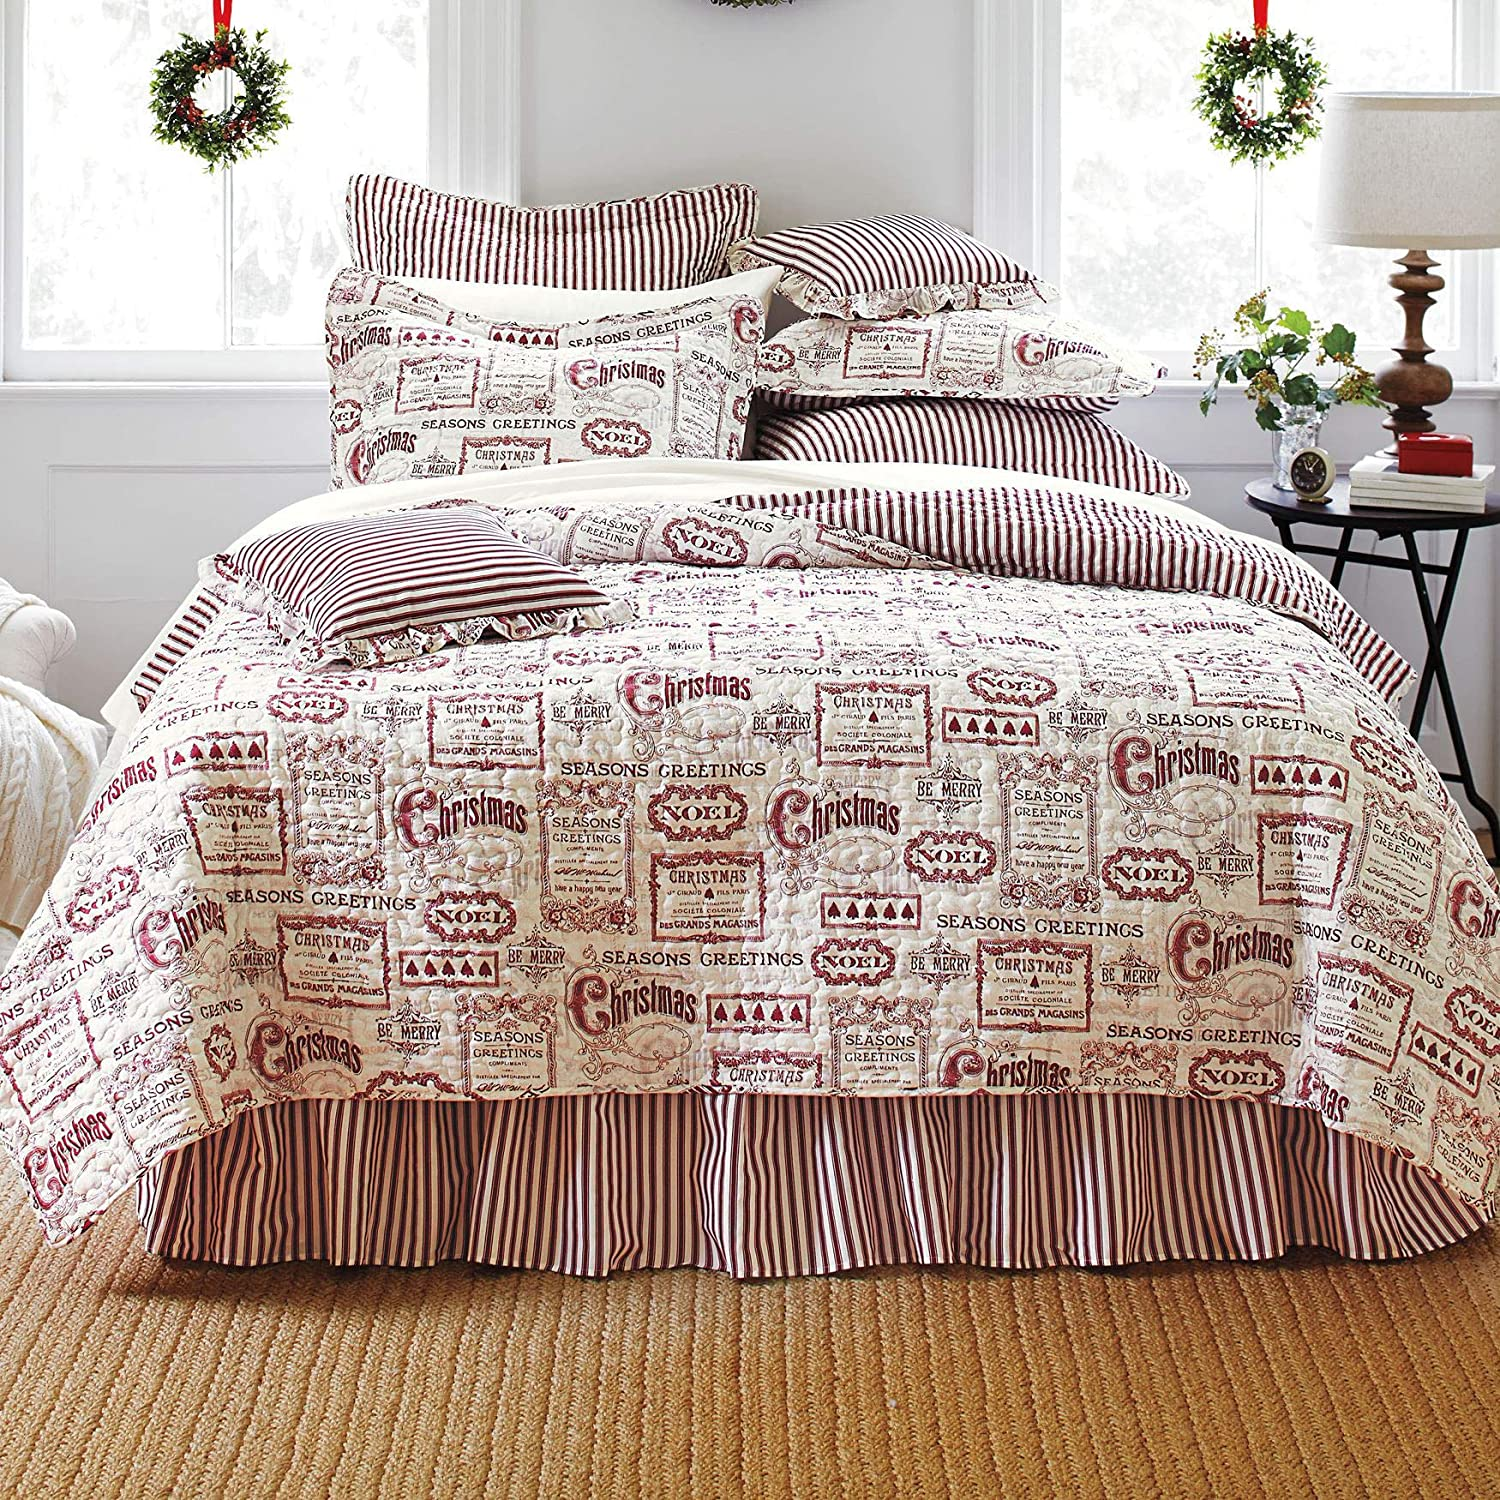 BrylaneHome Vintage Christmas 4-Pc. Quilt Set - Ivory Red